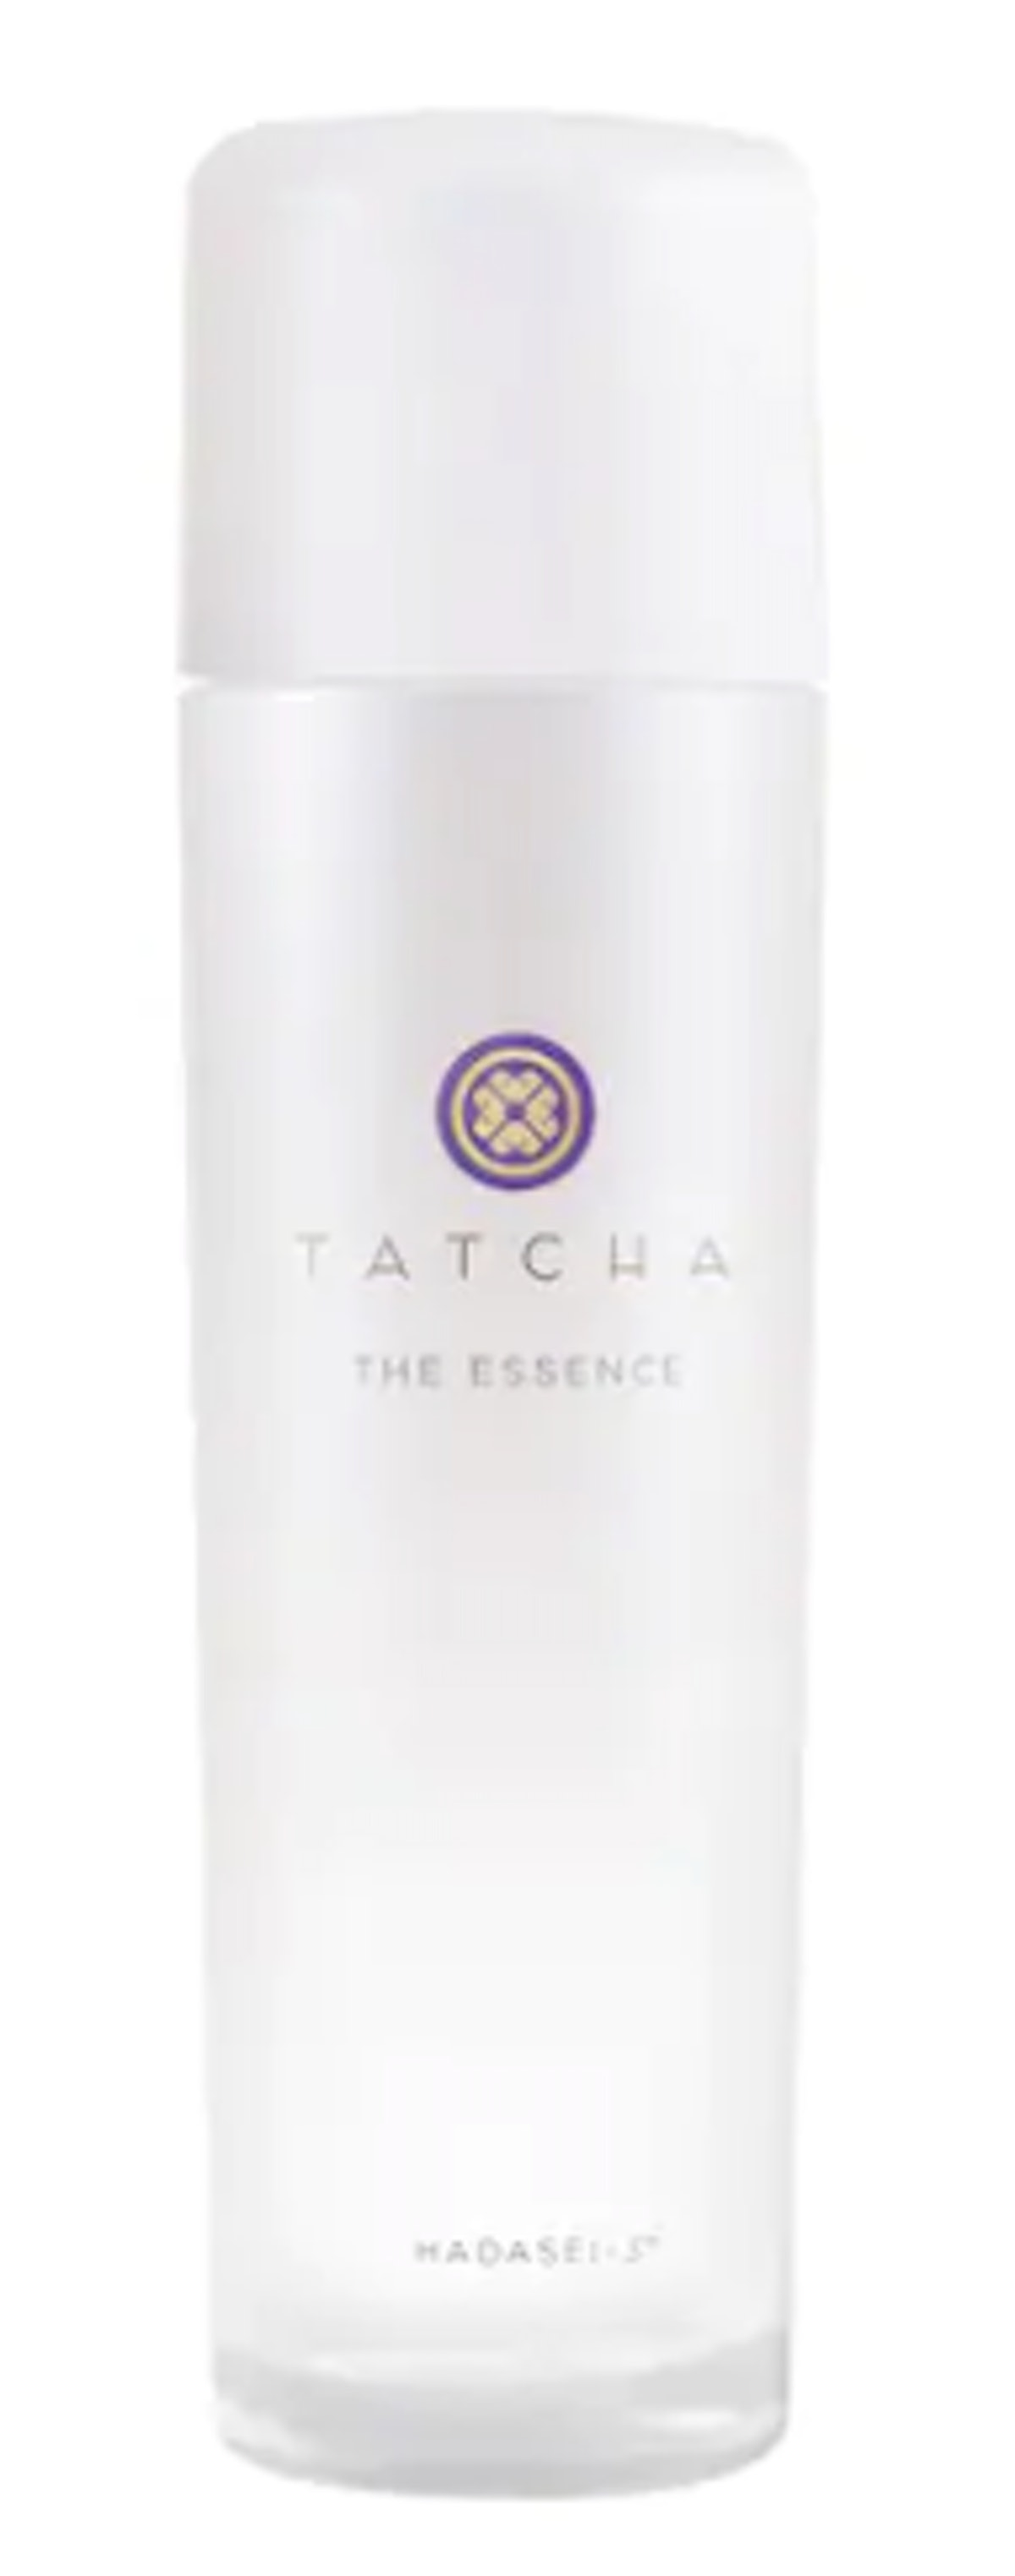 The Essence Skin Care Boosting Treatment